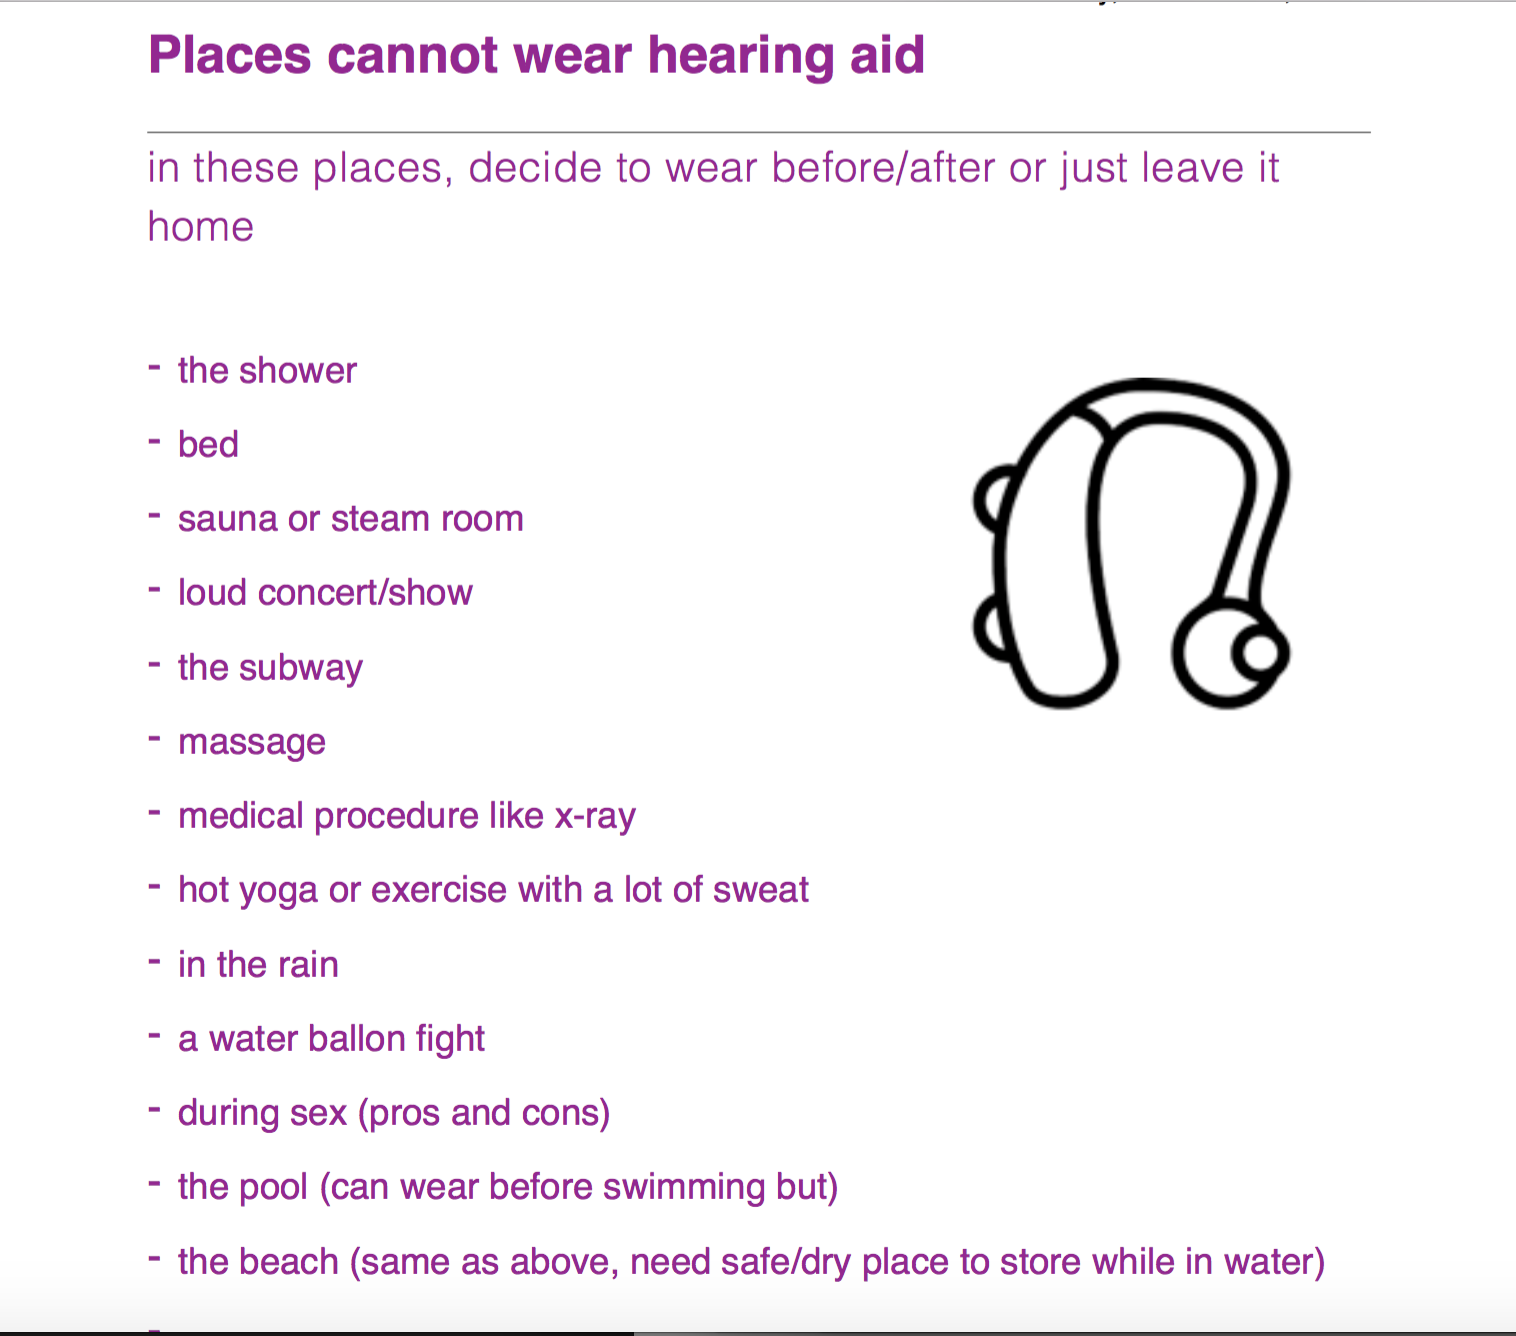 places cannt wear.png